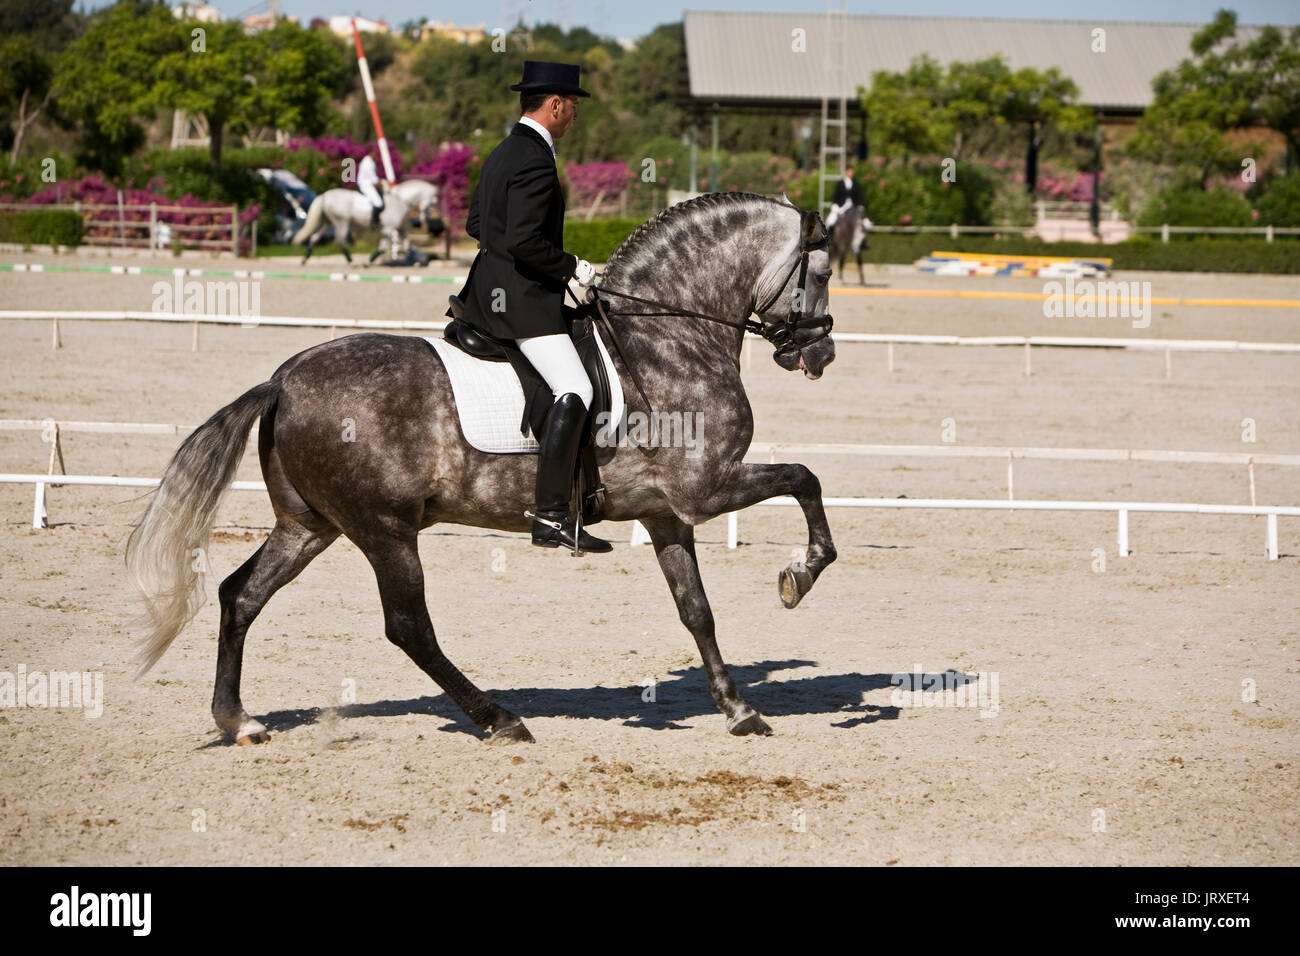 Training during an exercise of equestrian morphology of horses of pure Spanish race in Estepona, Malaga province, Andalusia, Spain - Stock Image